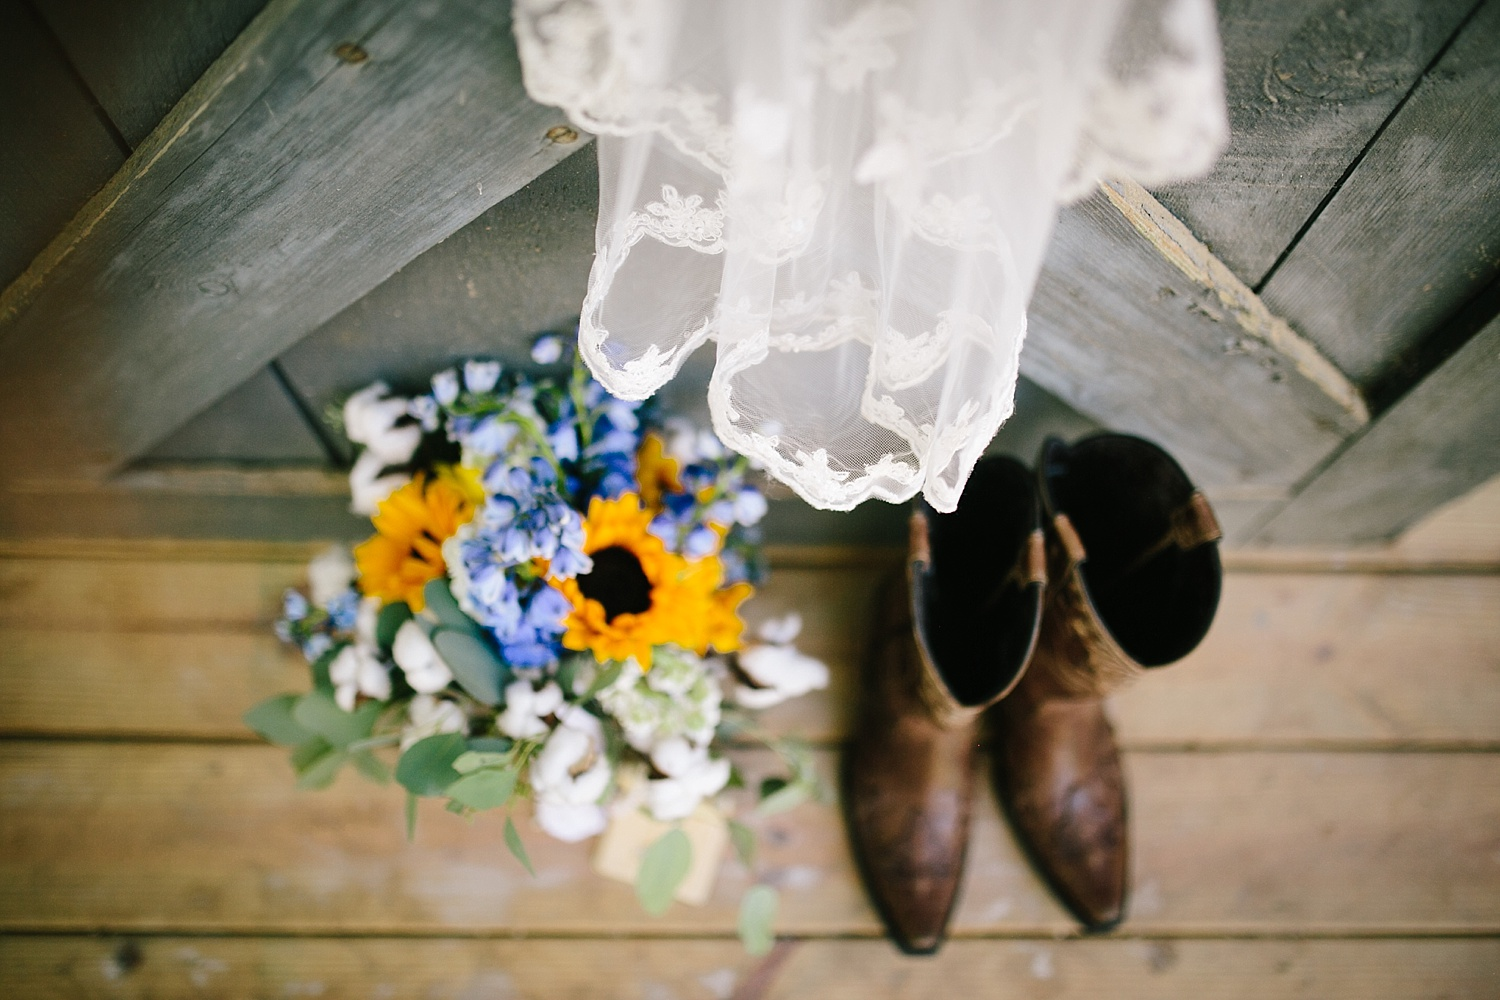 jennyryan_newbeginnings_farmstead_upstatenewyork_wedding_image010.jpg